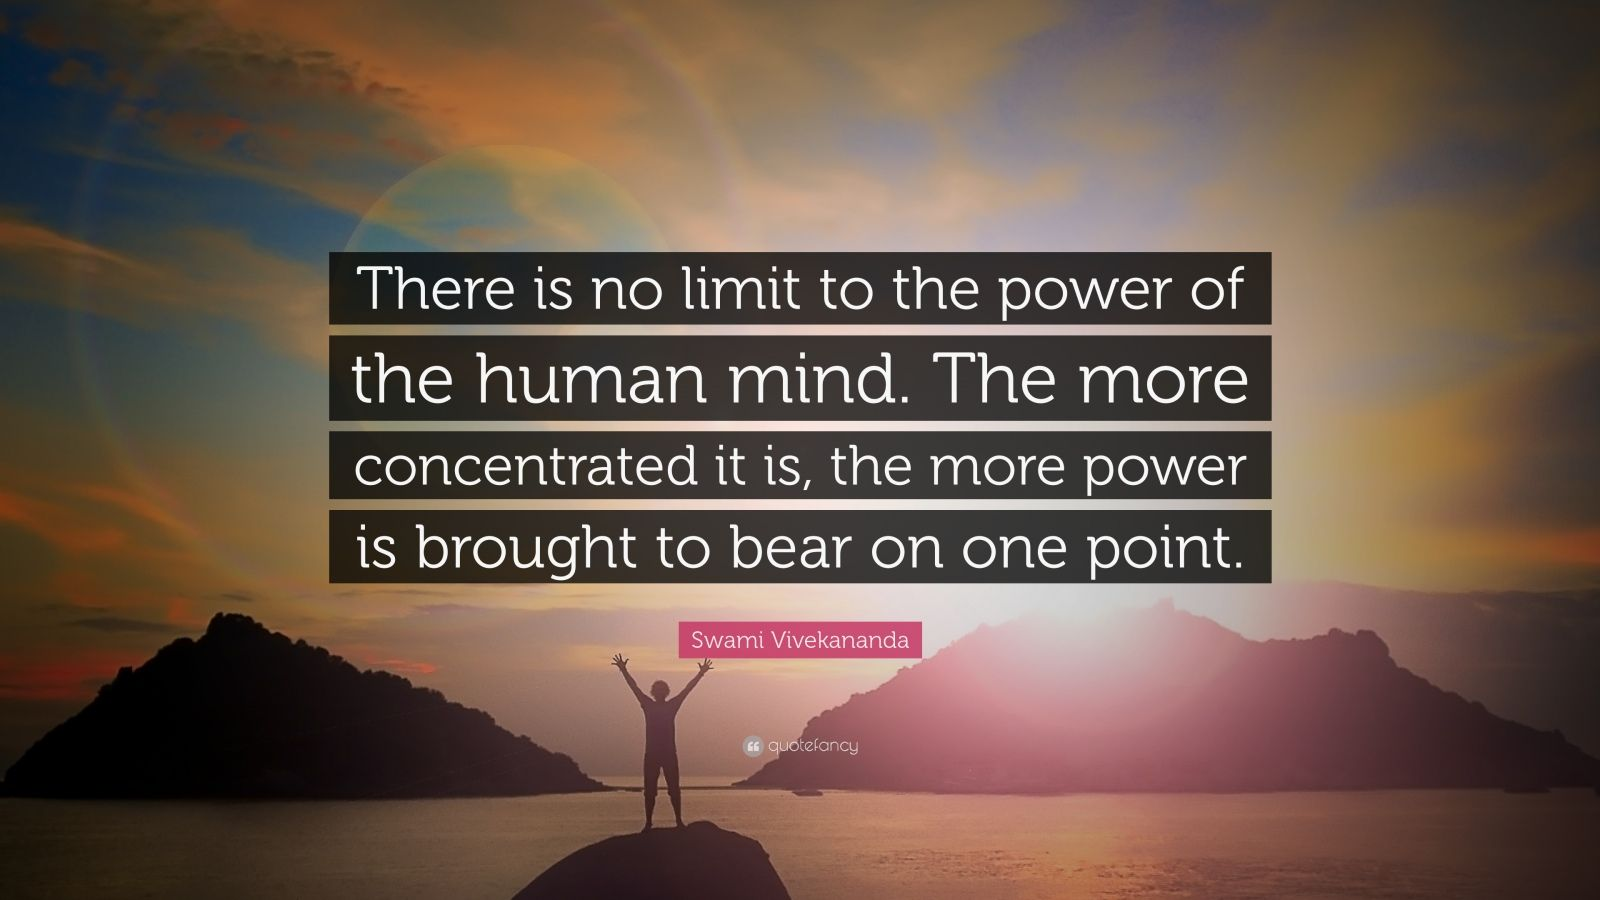 "Swami Vivekananda Quote: ""There is no limit to the power of the human mind. The more concentrated it is, the more power is brought to bear on one point."""